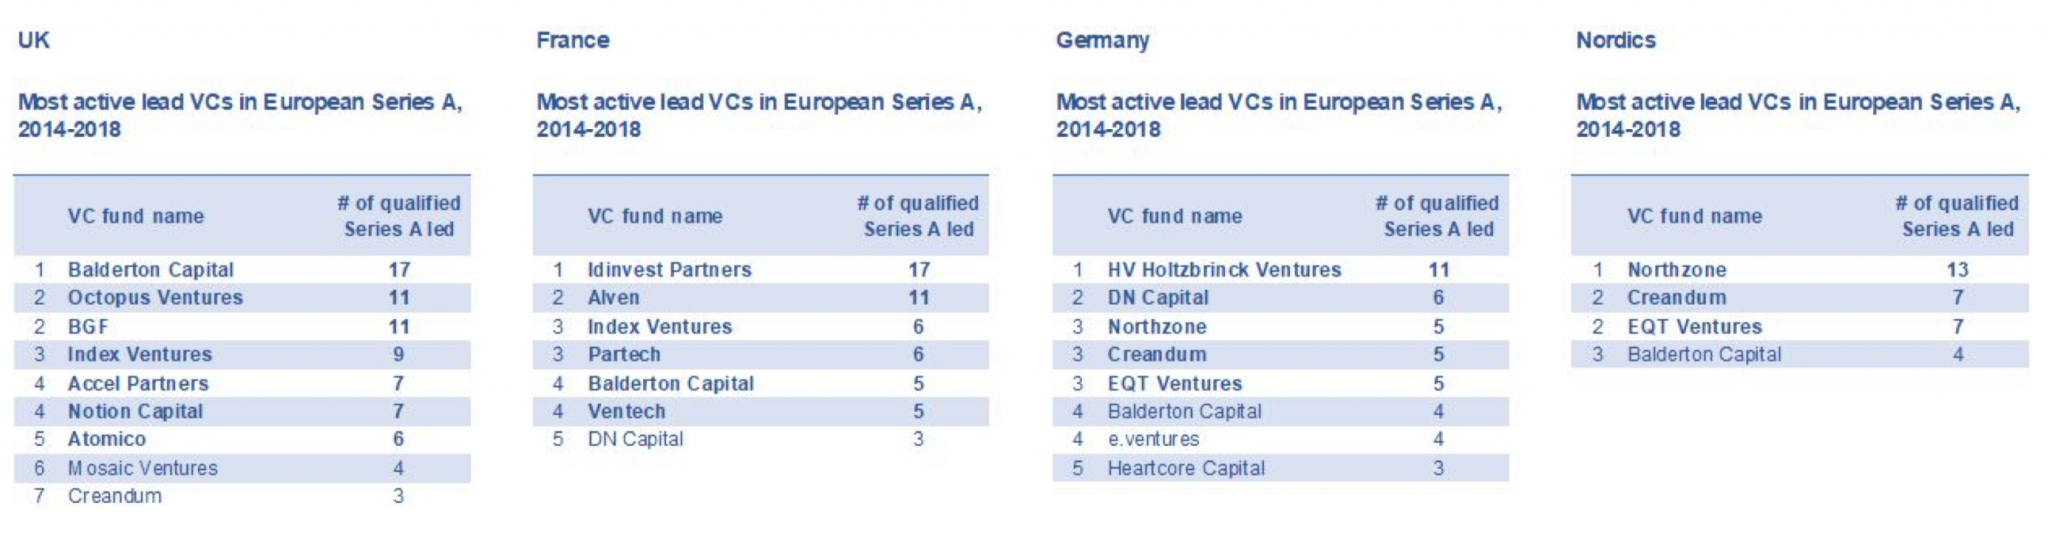 list of Lists of the most active lead VCs broken down by country